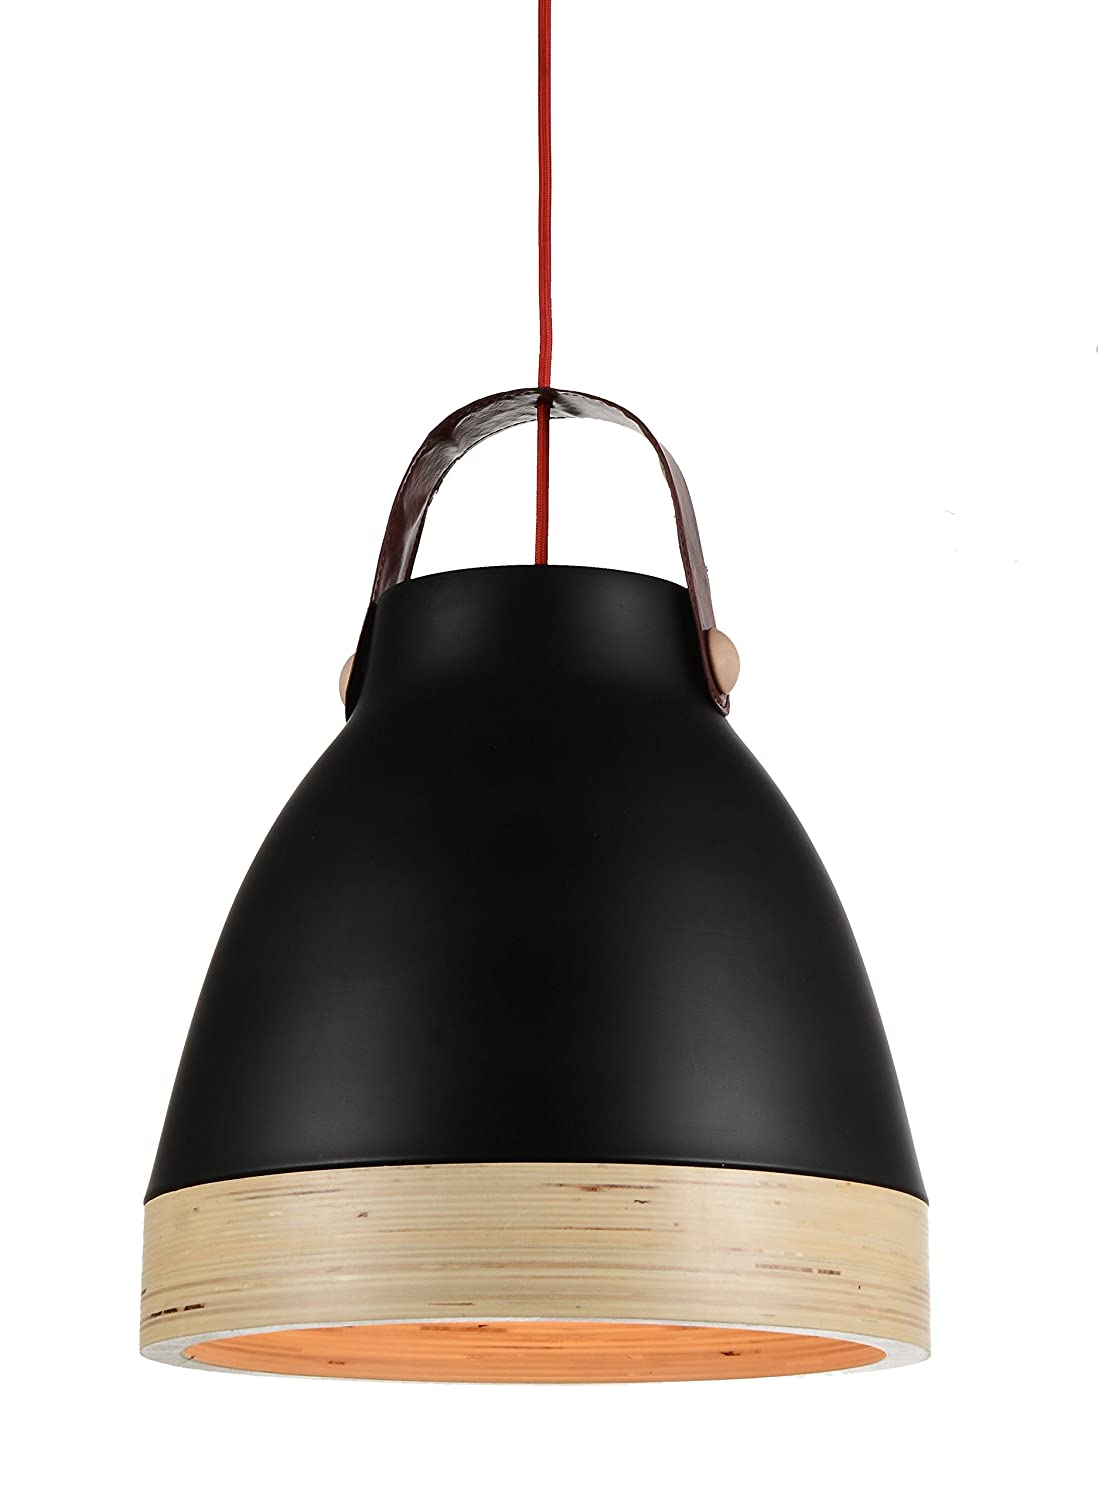 LED Light Bulb Included Cocoweb 13 Norcia Pendant Light with Wood Trim Black